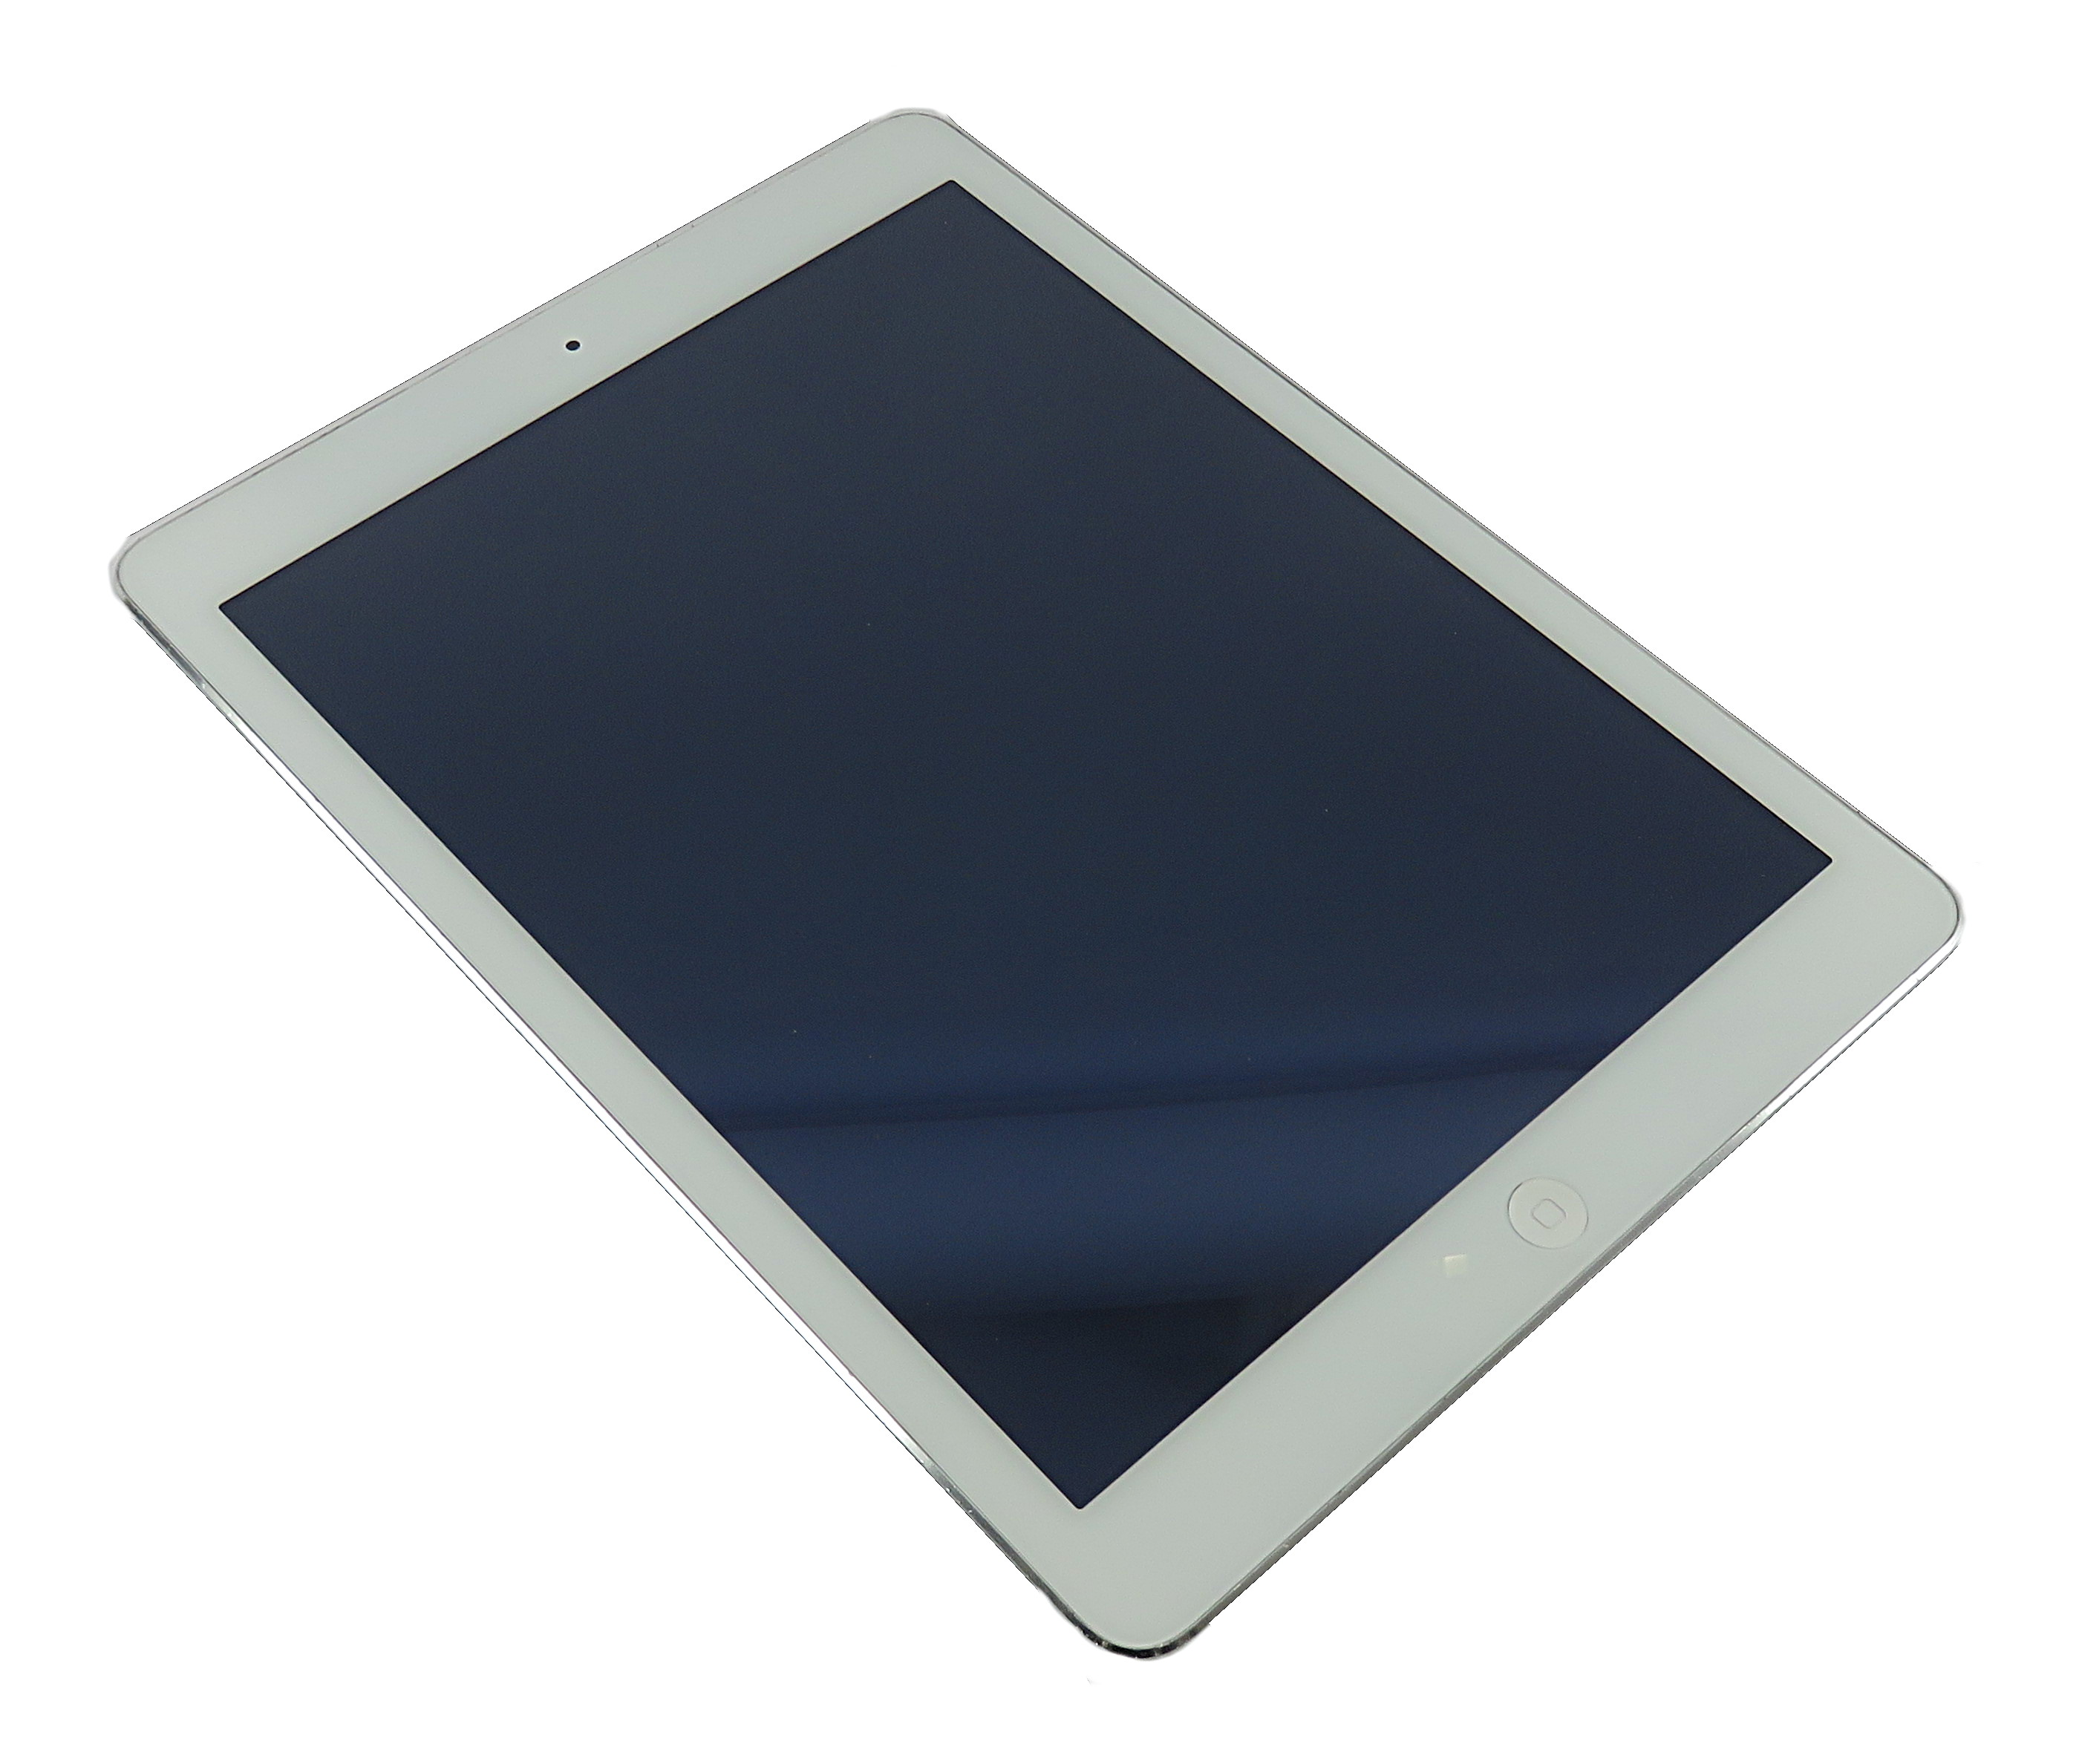 Silver Grade C Apple Ipad Air 1st Gen A1474 16gb Wifi